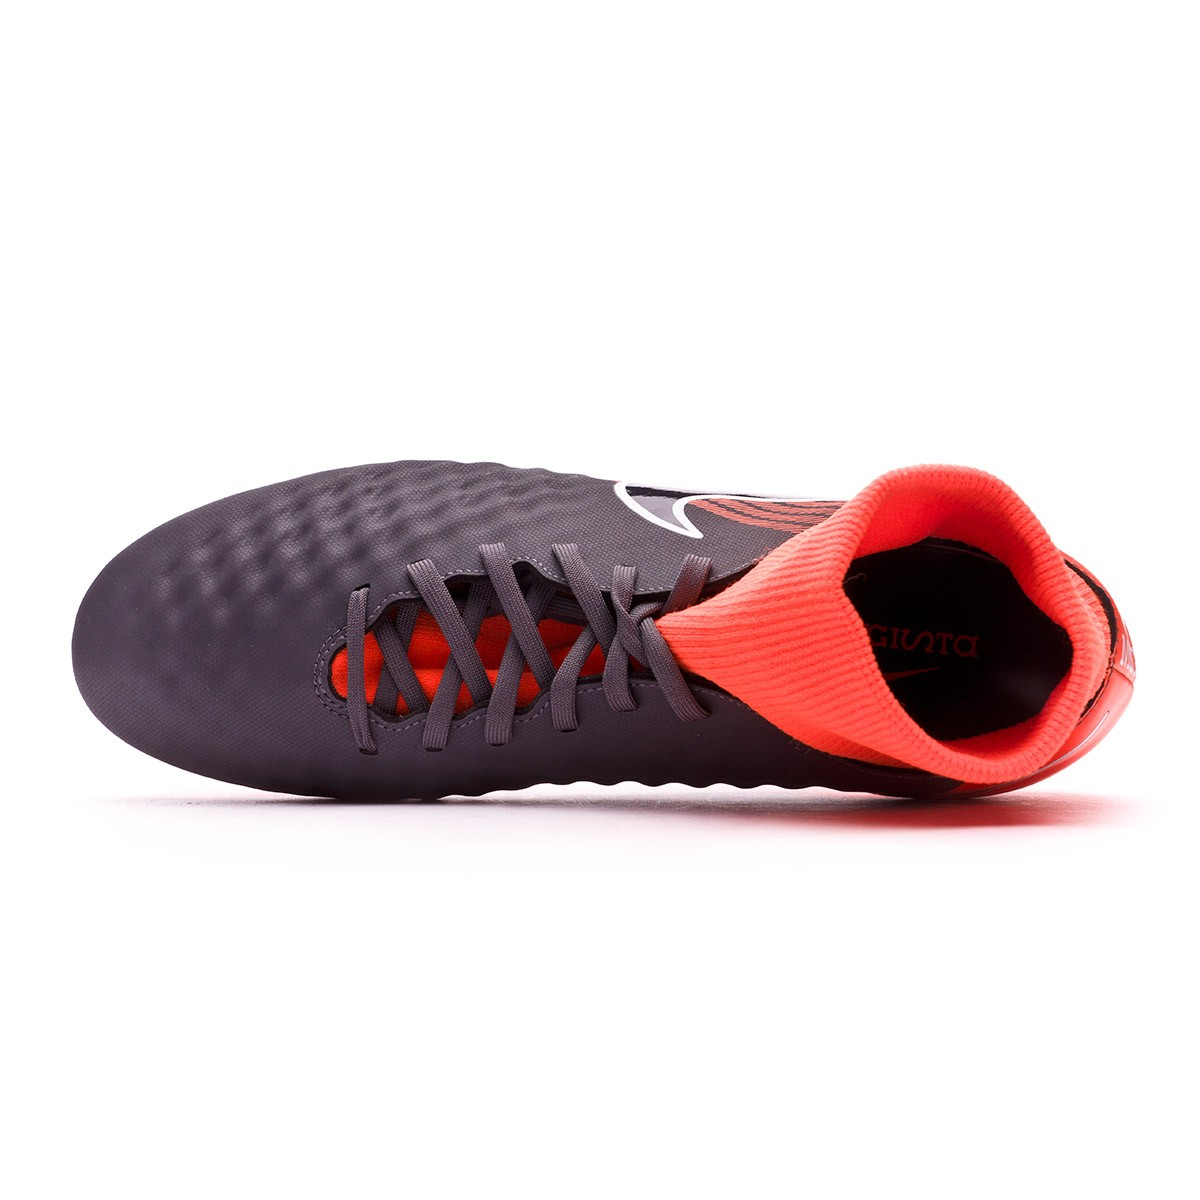 c62546349be1 Football Boots Nike Magista Obra II Academy DF FG Dark grey-Black-Total  orange-White - Tienda de fútbol Fútbol Emotion